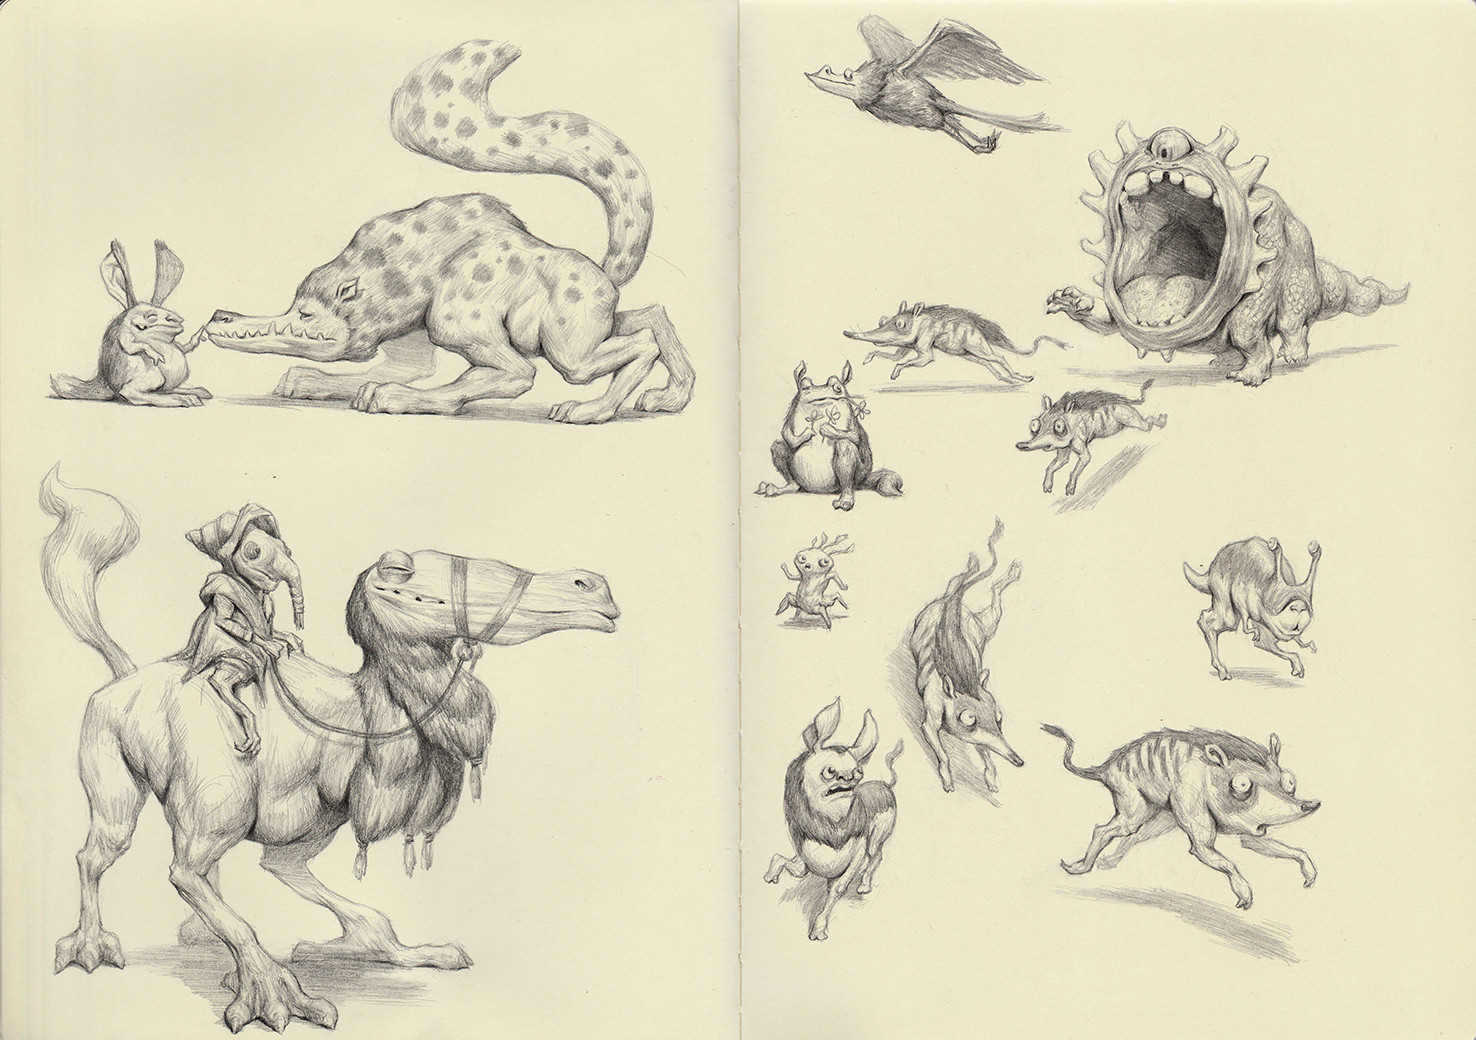 Creature Sketchbook pg 3-4